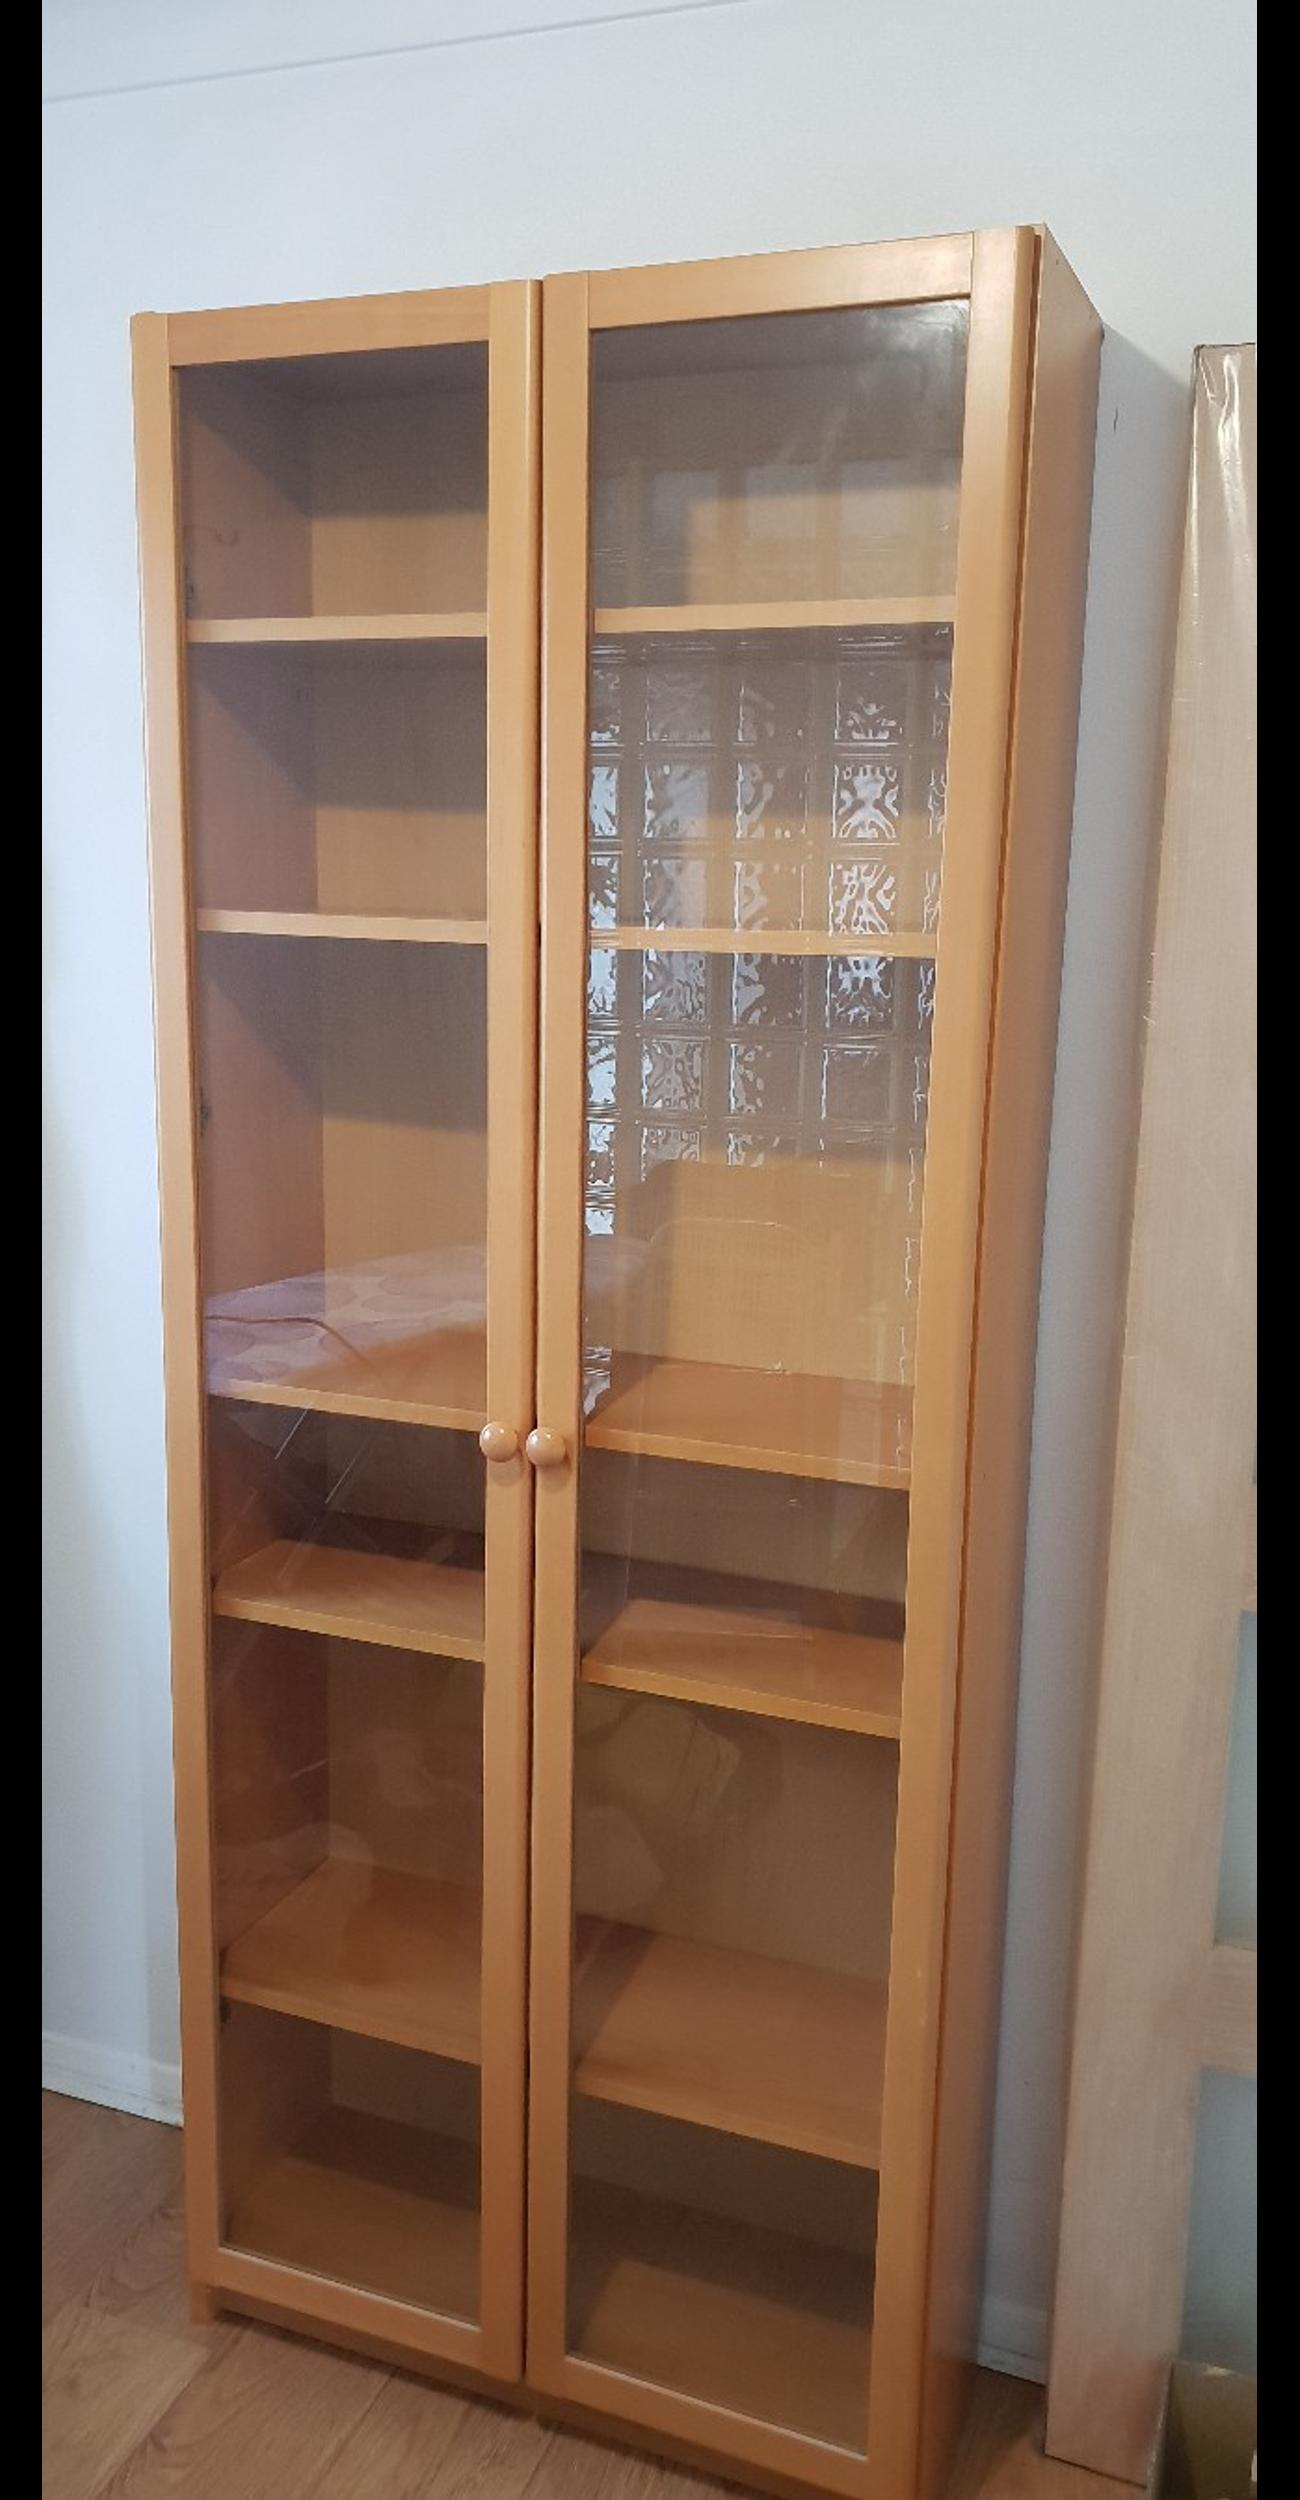 Ikea Billy Bookcase With Glass Doors In Rm16 South Ockendon